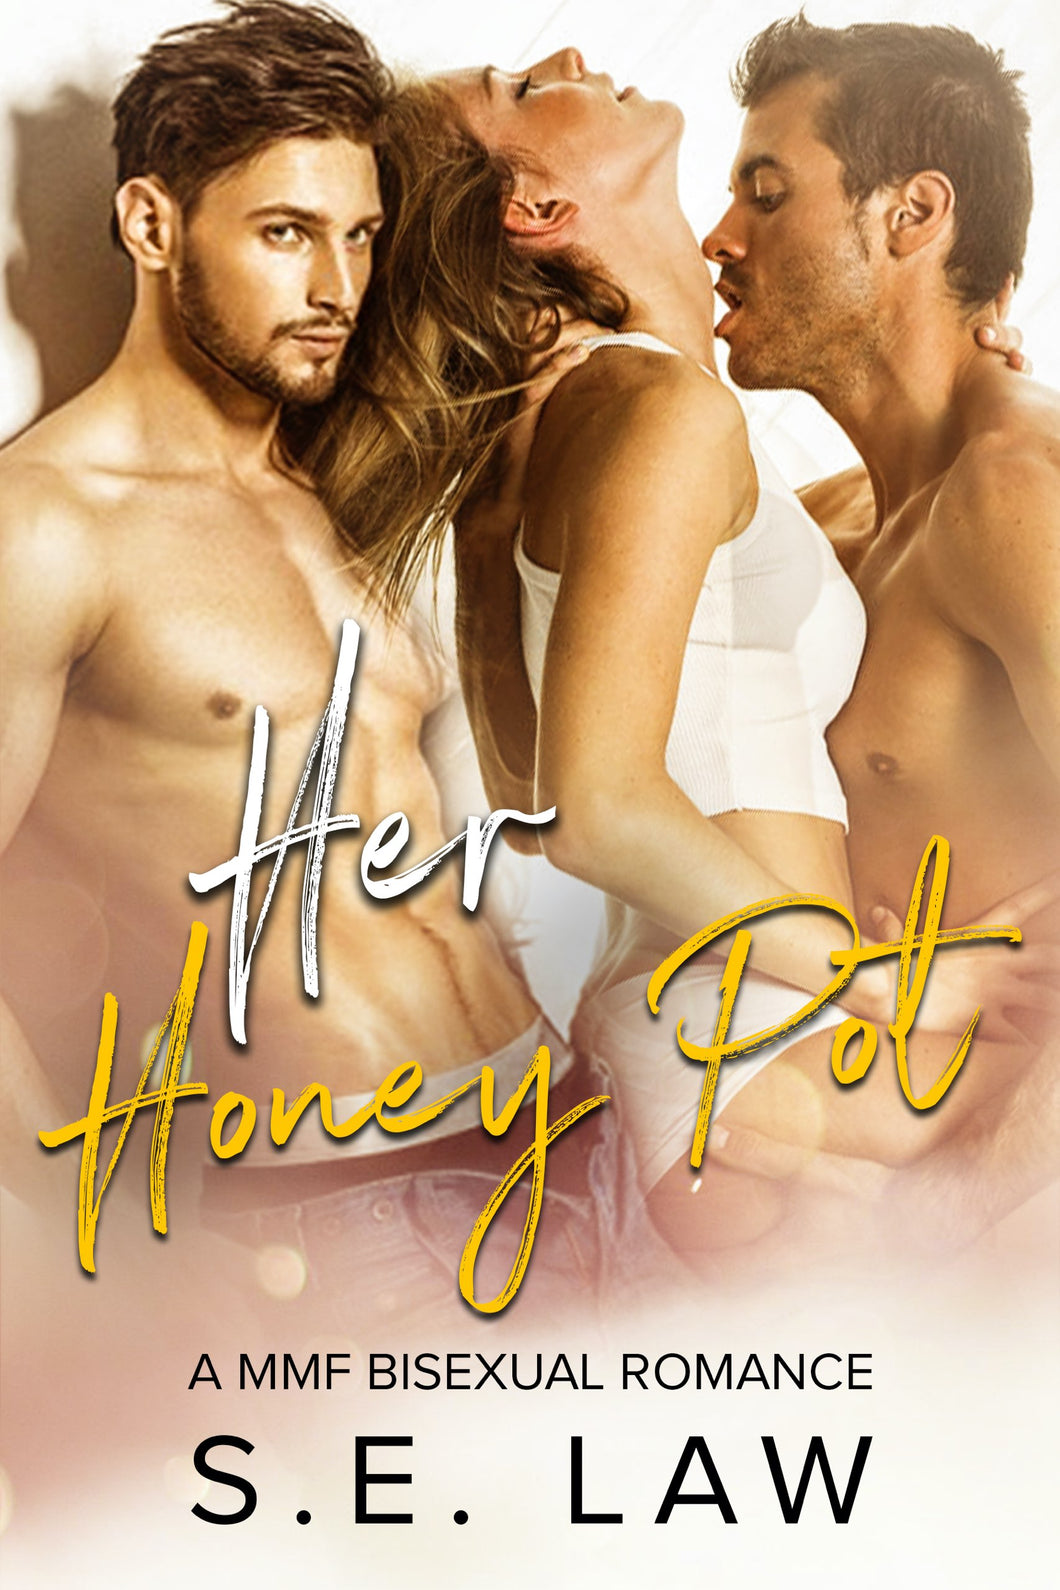 Her Honey Pot